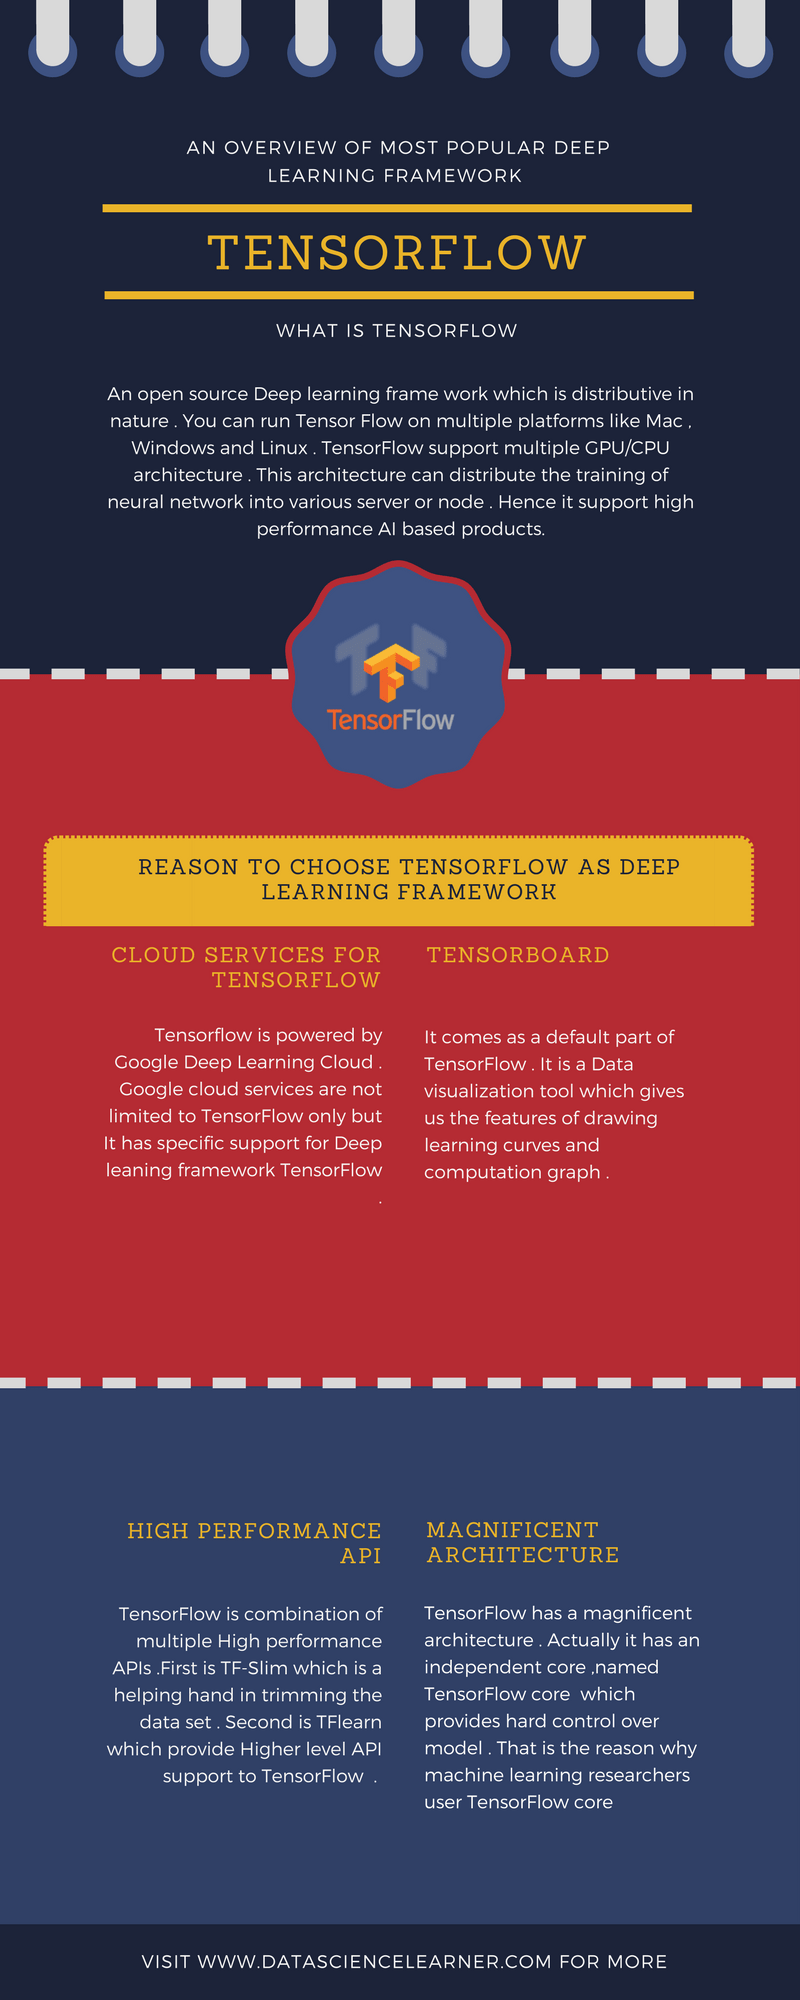 Overview of TensorFlow